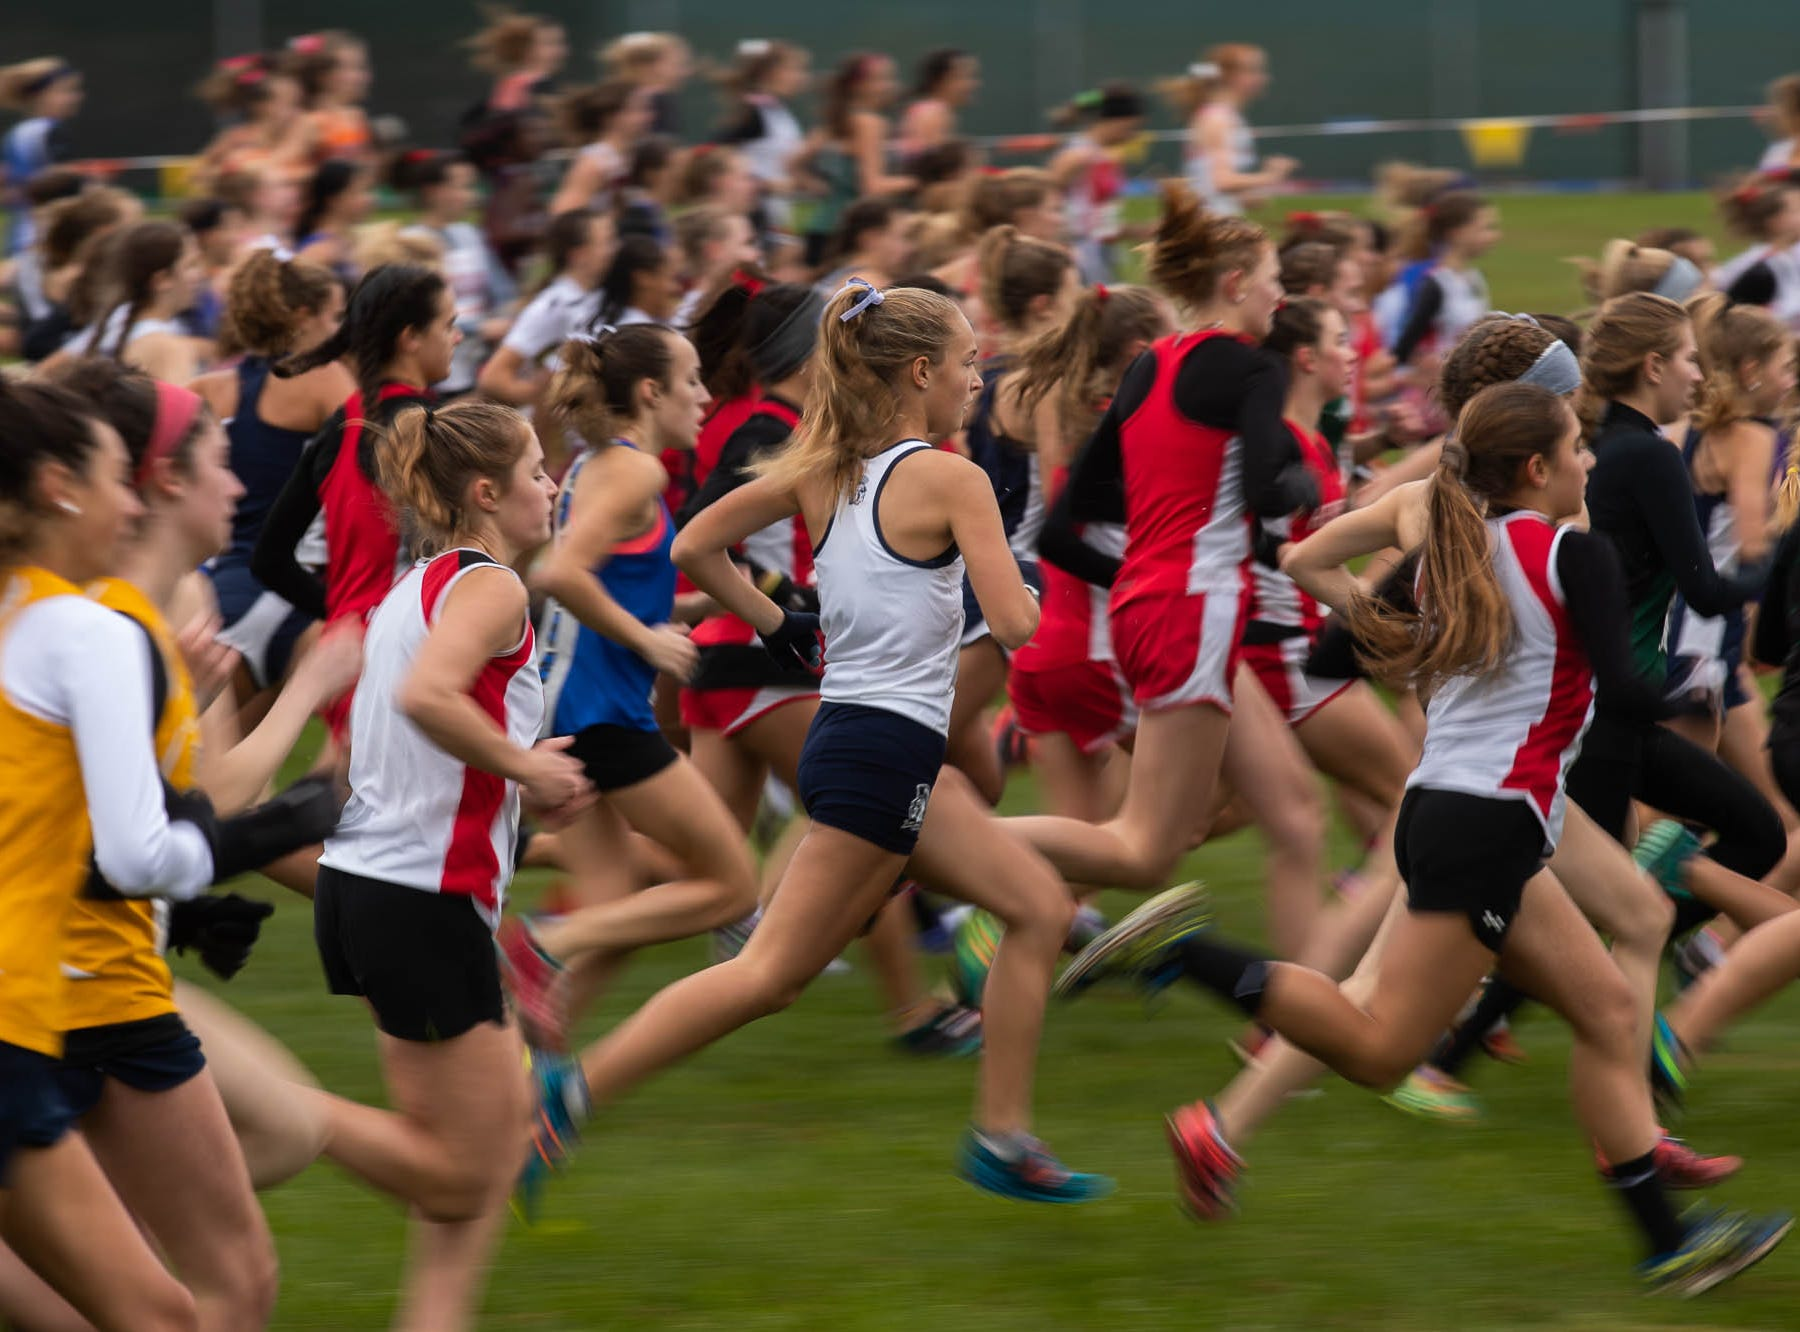 Fairfield boys, Dallastown girls win first titles at District 3 cross country championships